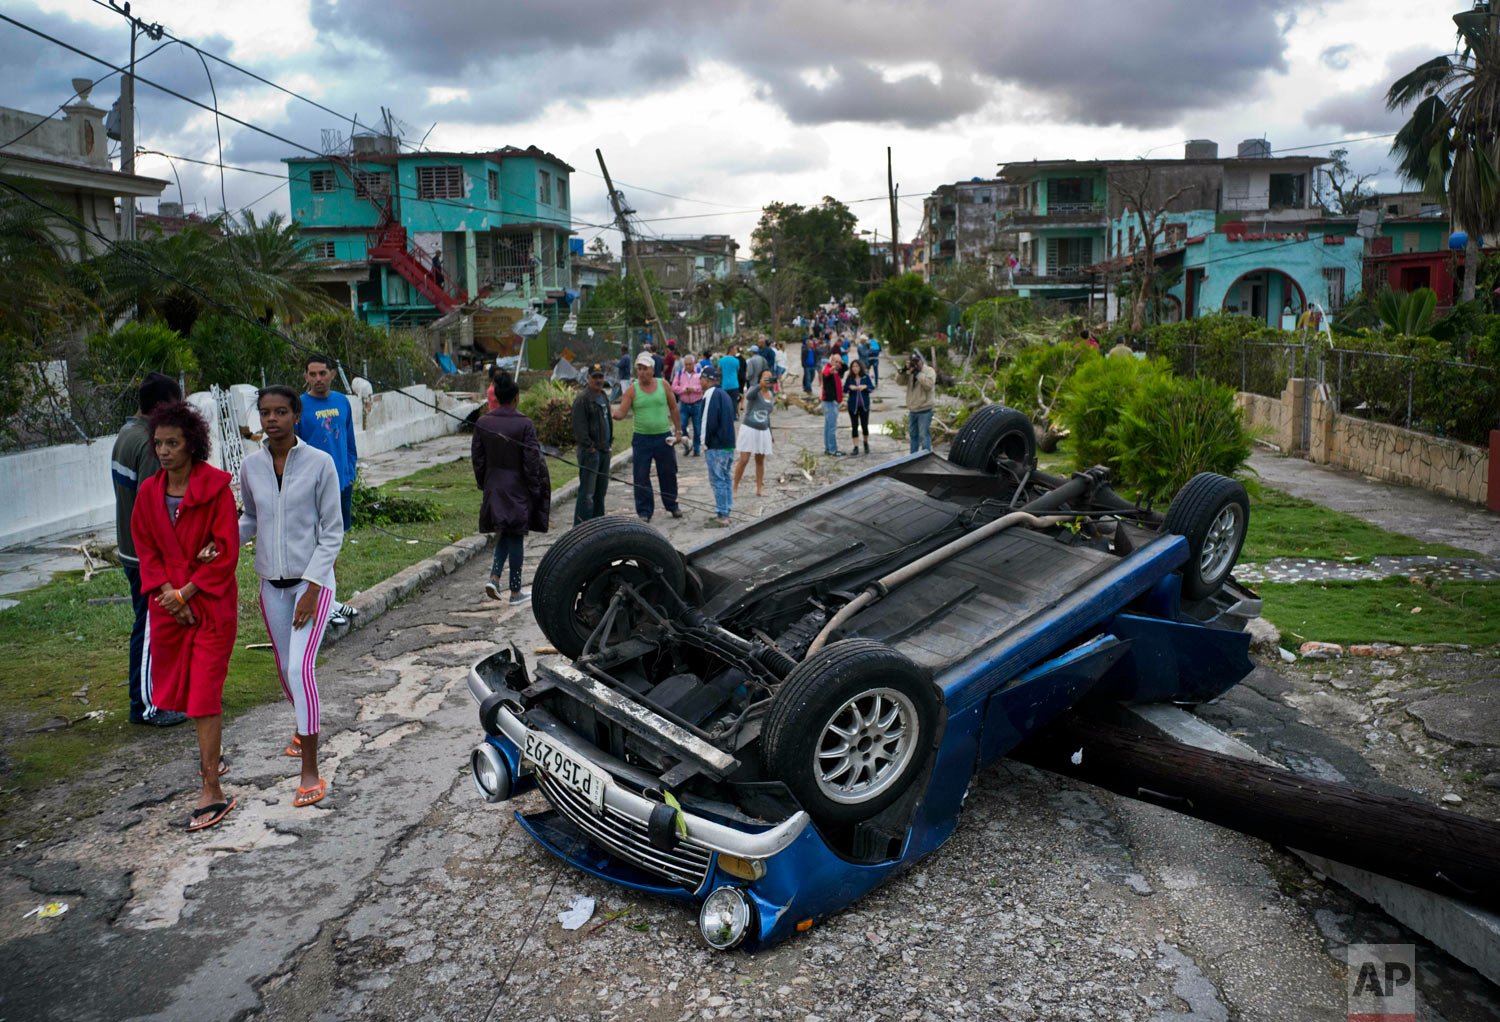 A car overturned by a tornado lays smashed on top of a street pole in Havana, Cuba, Jan. 28, 2019. (AP Photo/Ramon Espinosa)